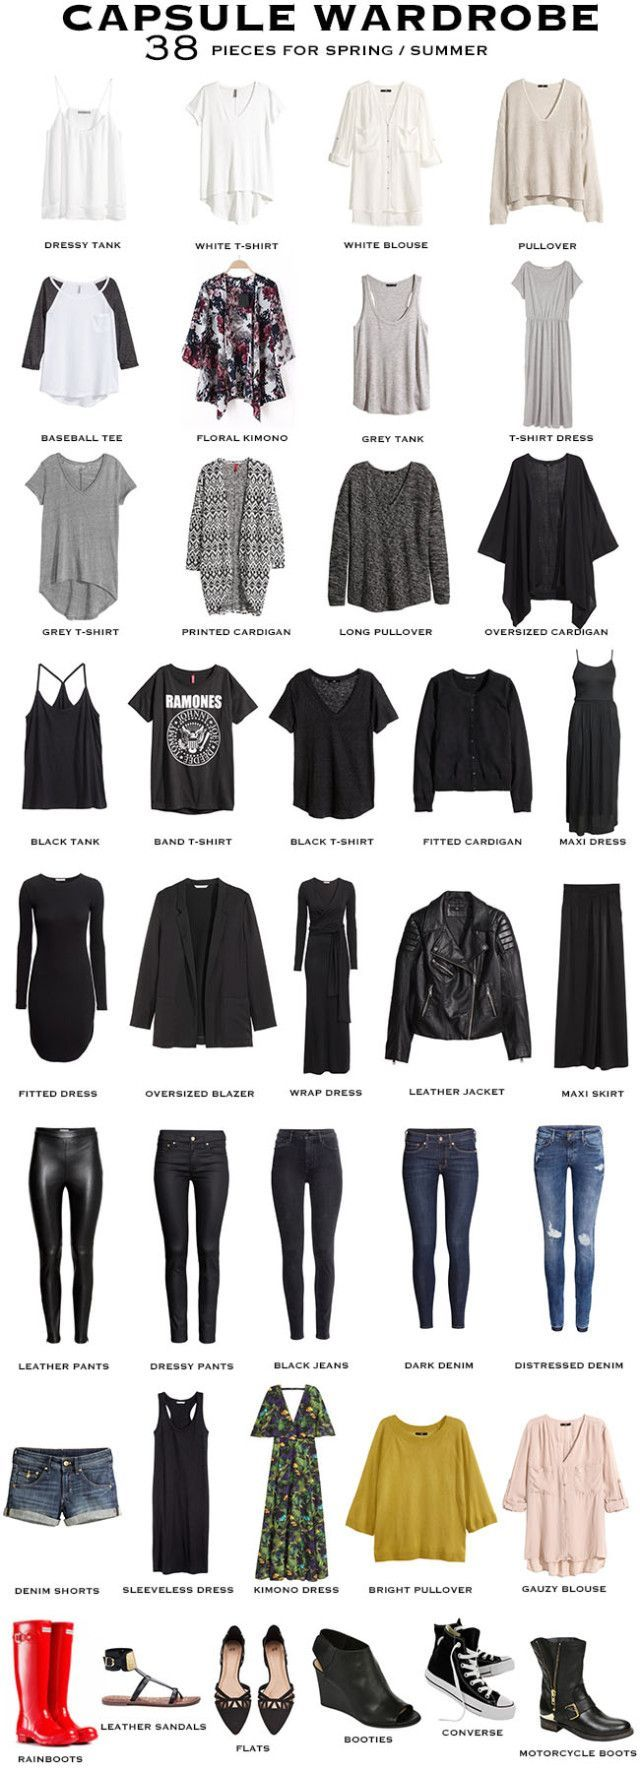 die besten 25 capsule wardrobe ideen auf pinterest grund kleiderschrank wesentliche college. Black Bedroom Furniture Sets. Home Design Ideas